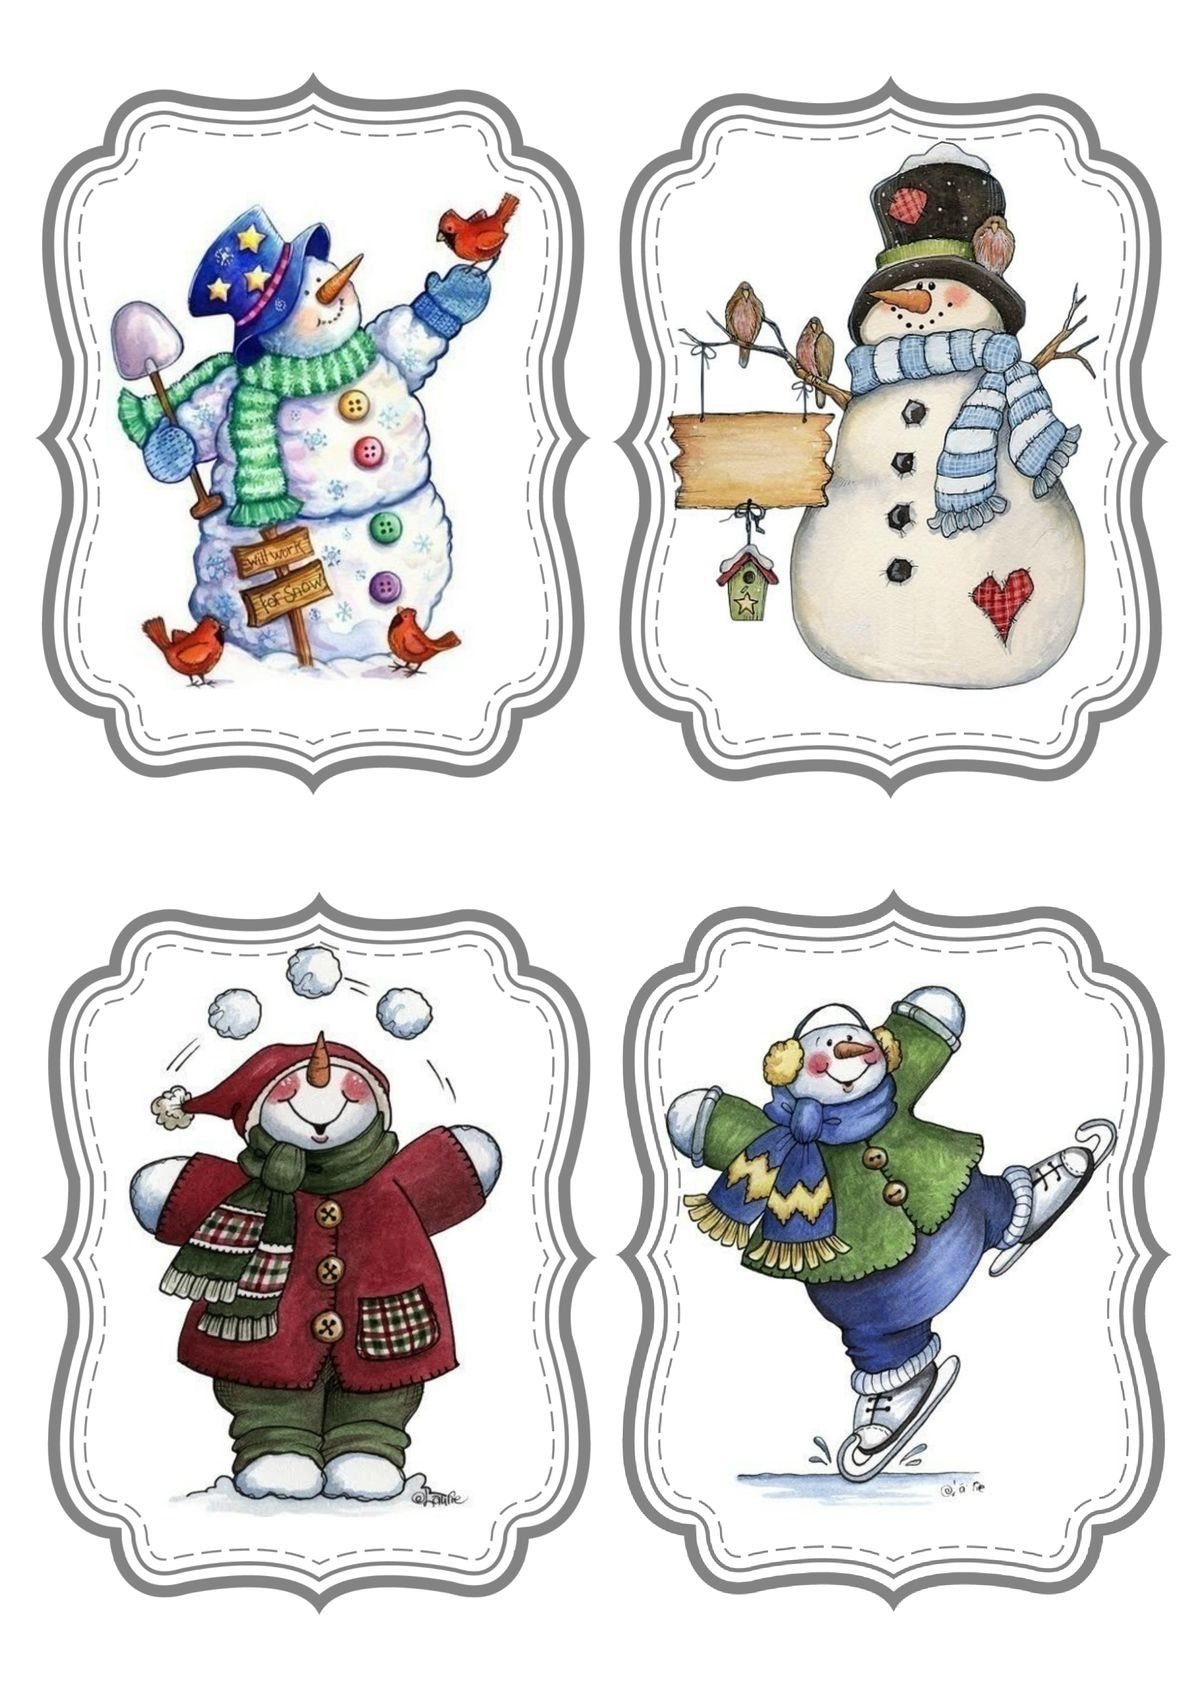 Christmas Clipart Games Templates Ideas Vintage Cartoons Winter Stuff